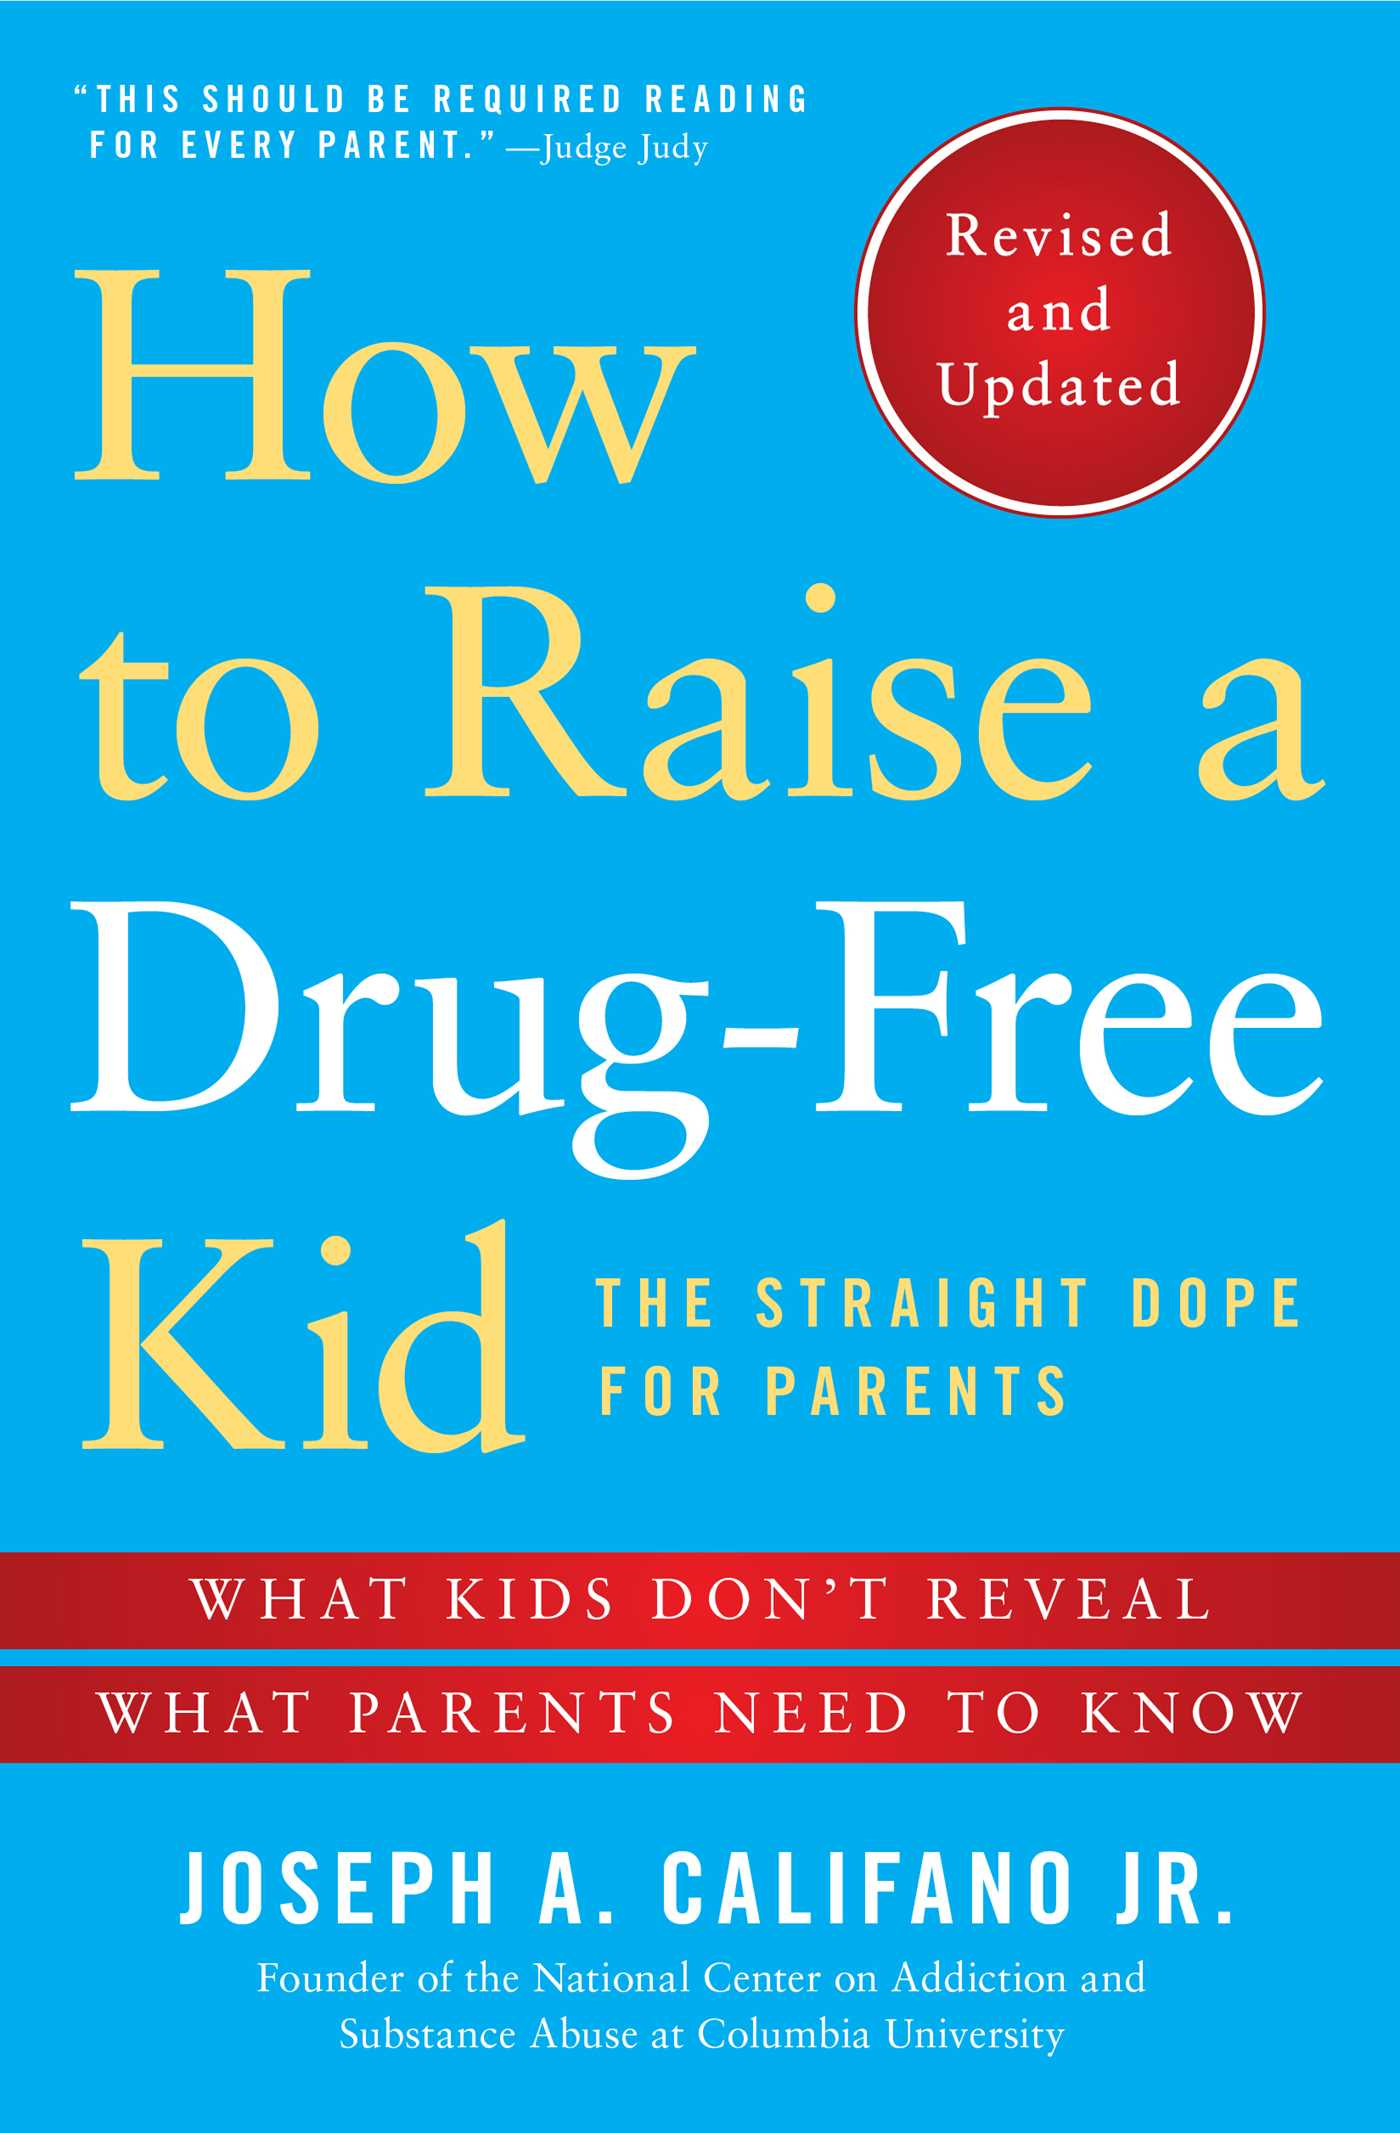 How-to-raise-a-drug-free-kid-9781476728438_hr